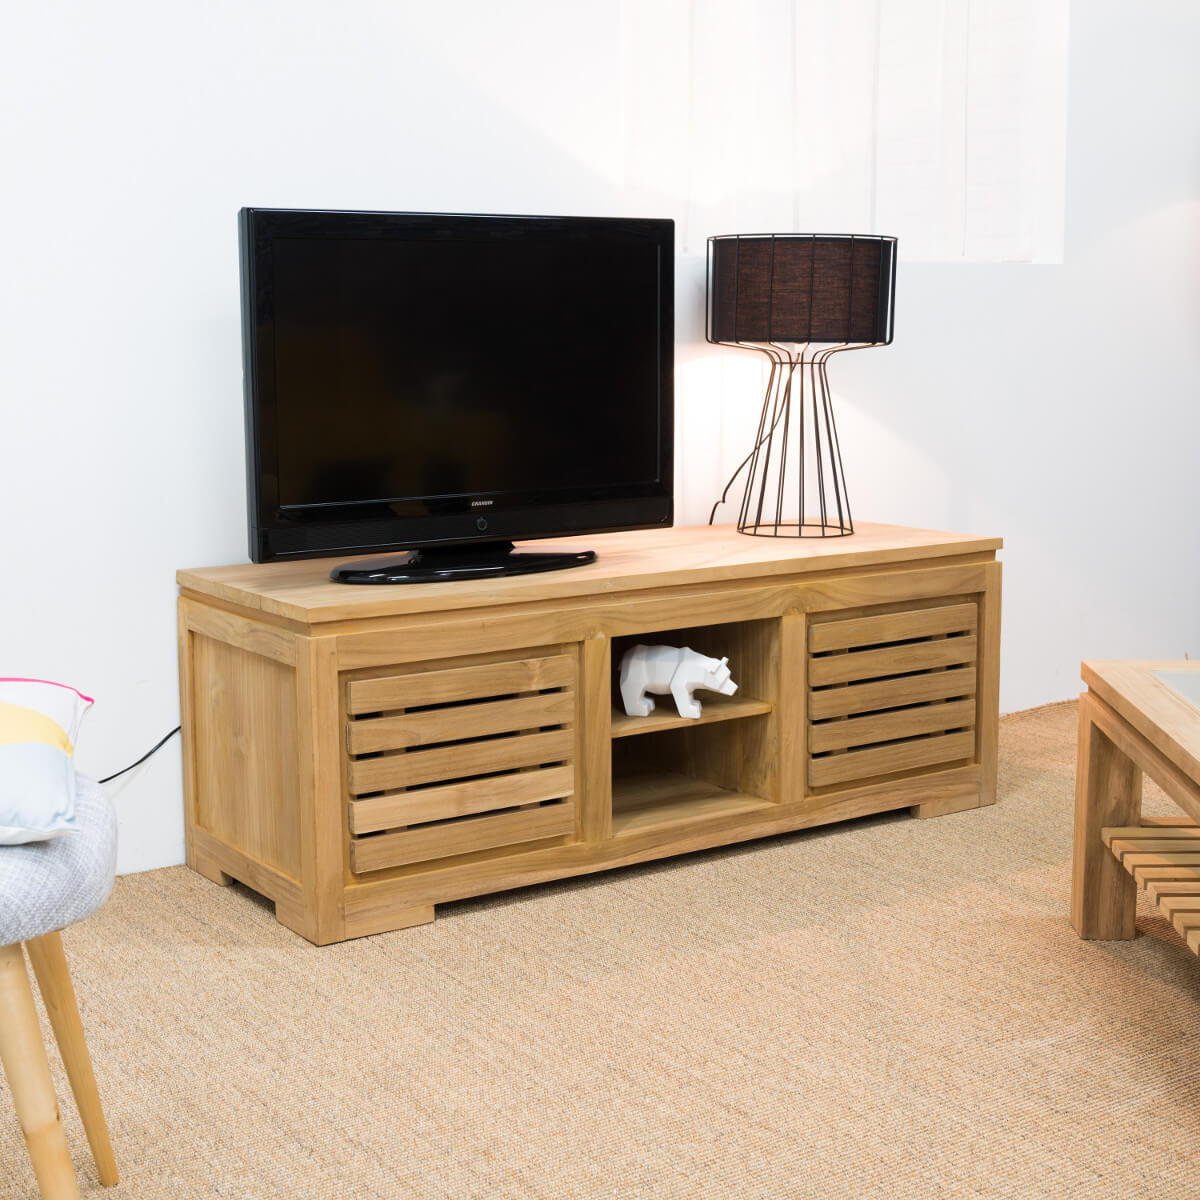 Meuble tv teck meuble tv bois naturel rectangle zen for Meuble en bois